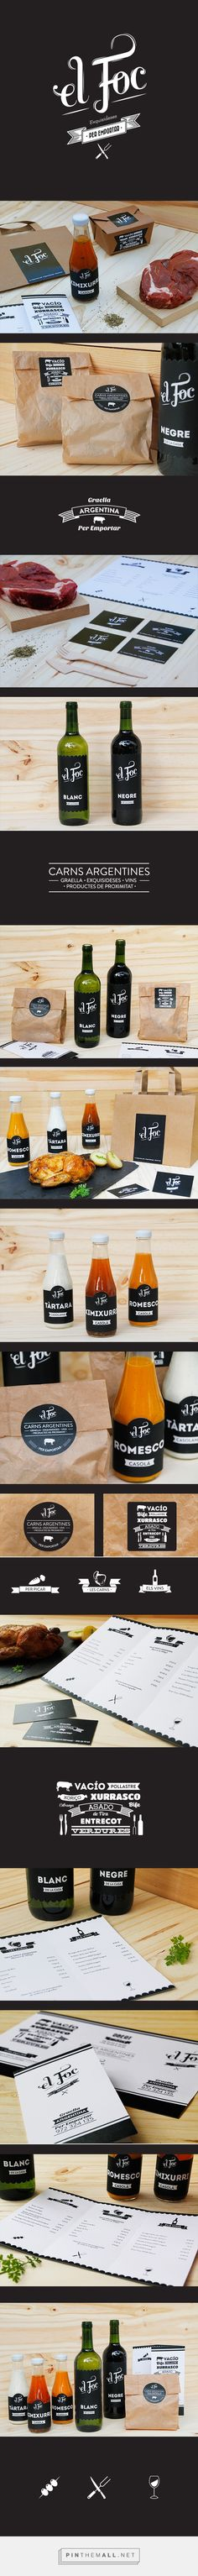 El Foc identity packaging branding on Behance by Le Maritime Studio curated by Packaging Diva PD. Anybody hungry yet?